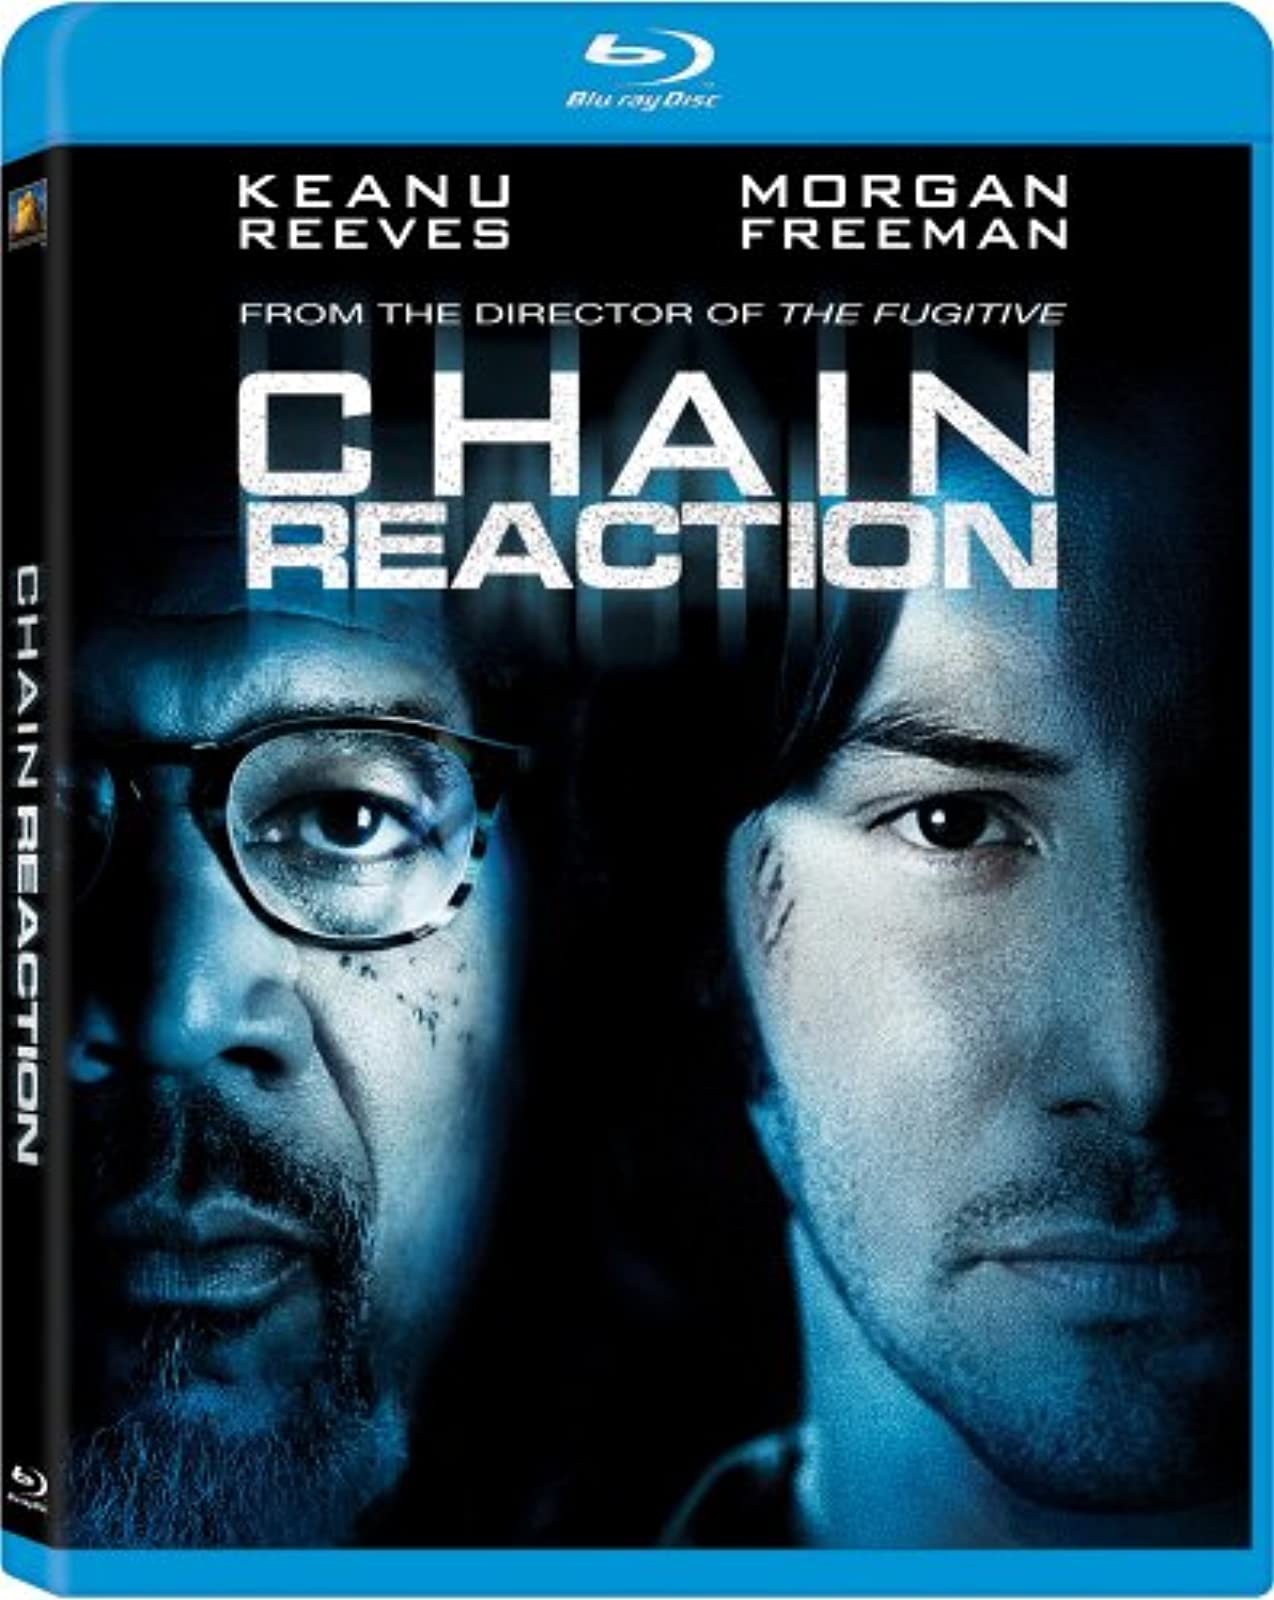 Chain Reaction Blu-Ray On Blu-Ray With Keanu Reeves